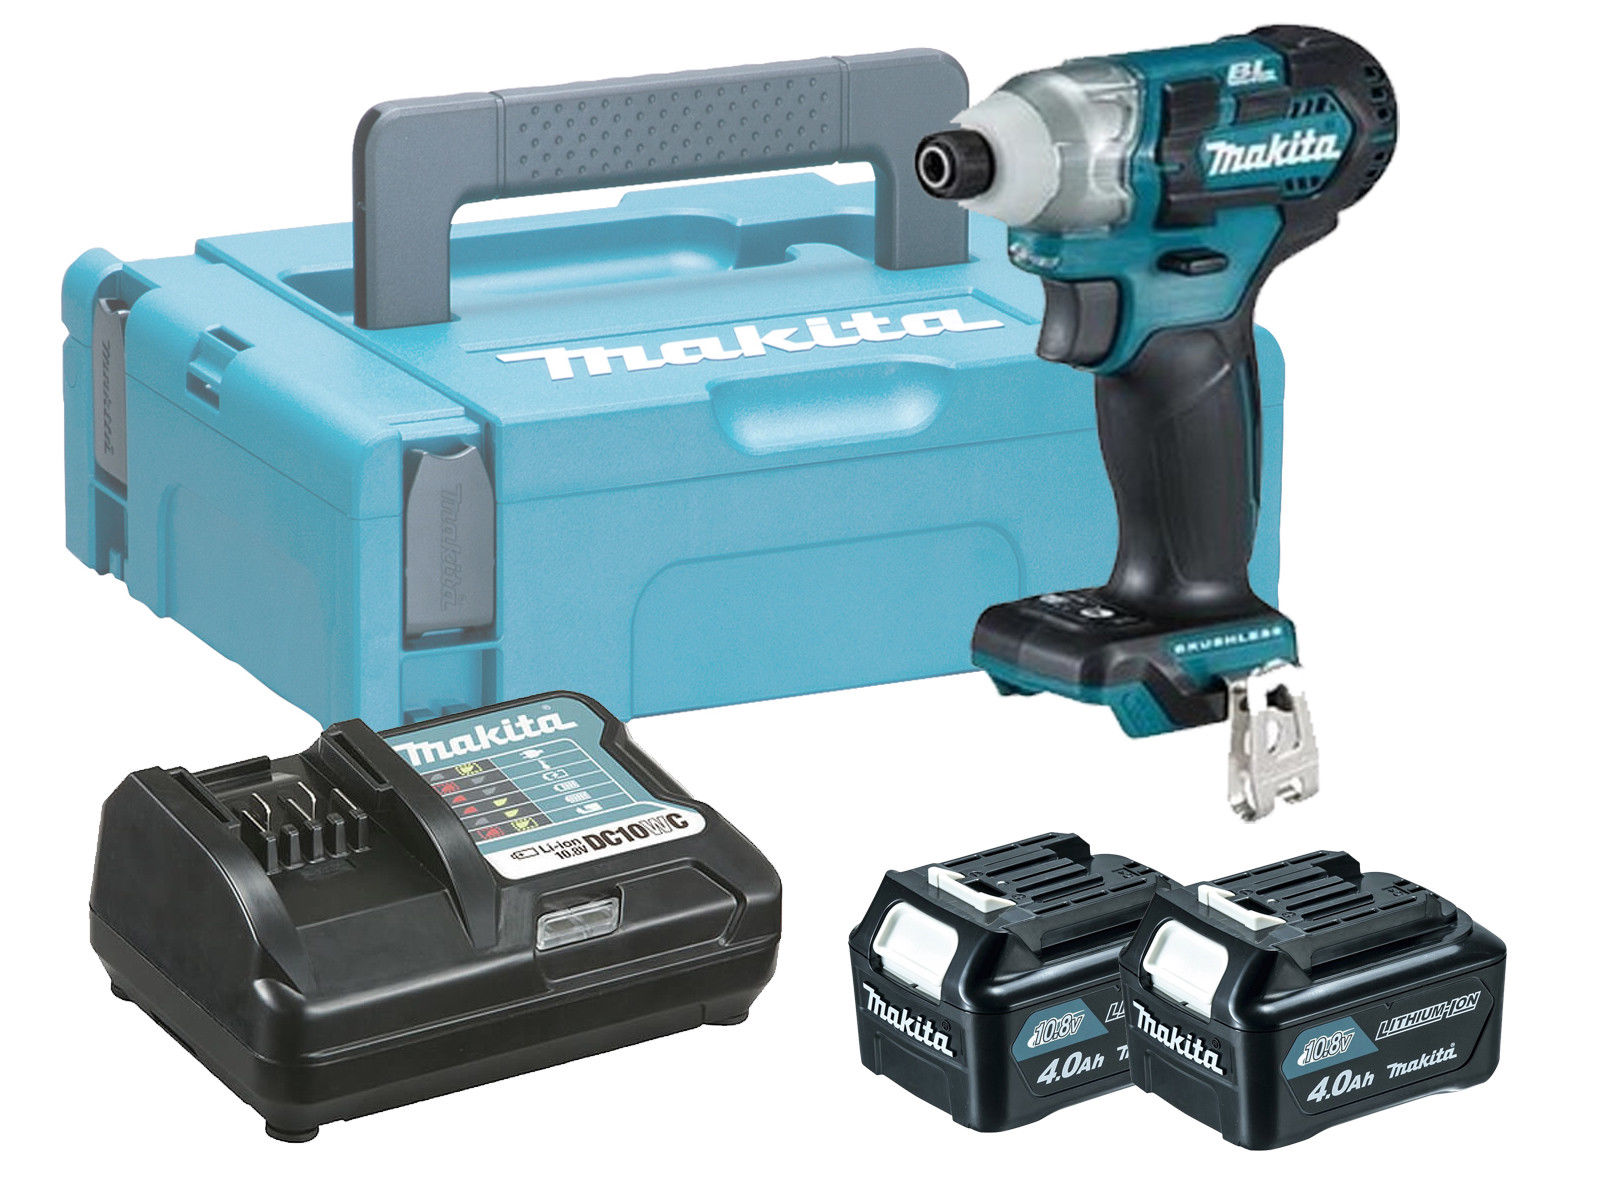 MAKITA 10.8V CXT BRUSHLESS IMPACT DRIVER - 4.0AH PACK